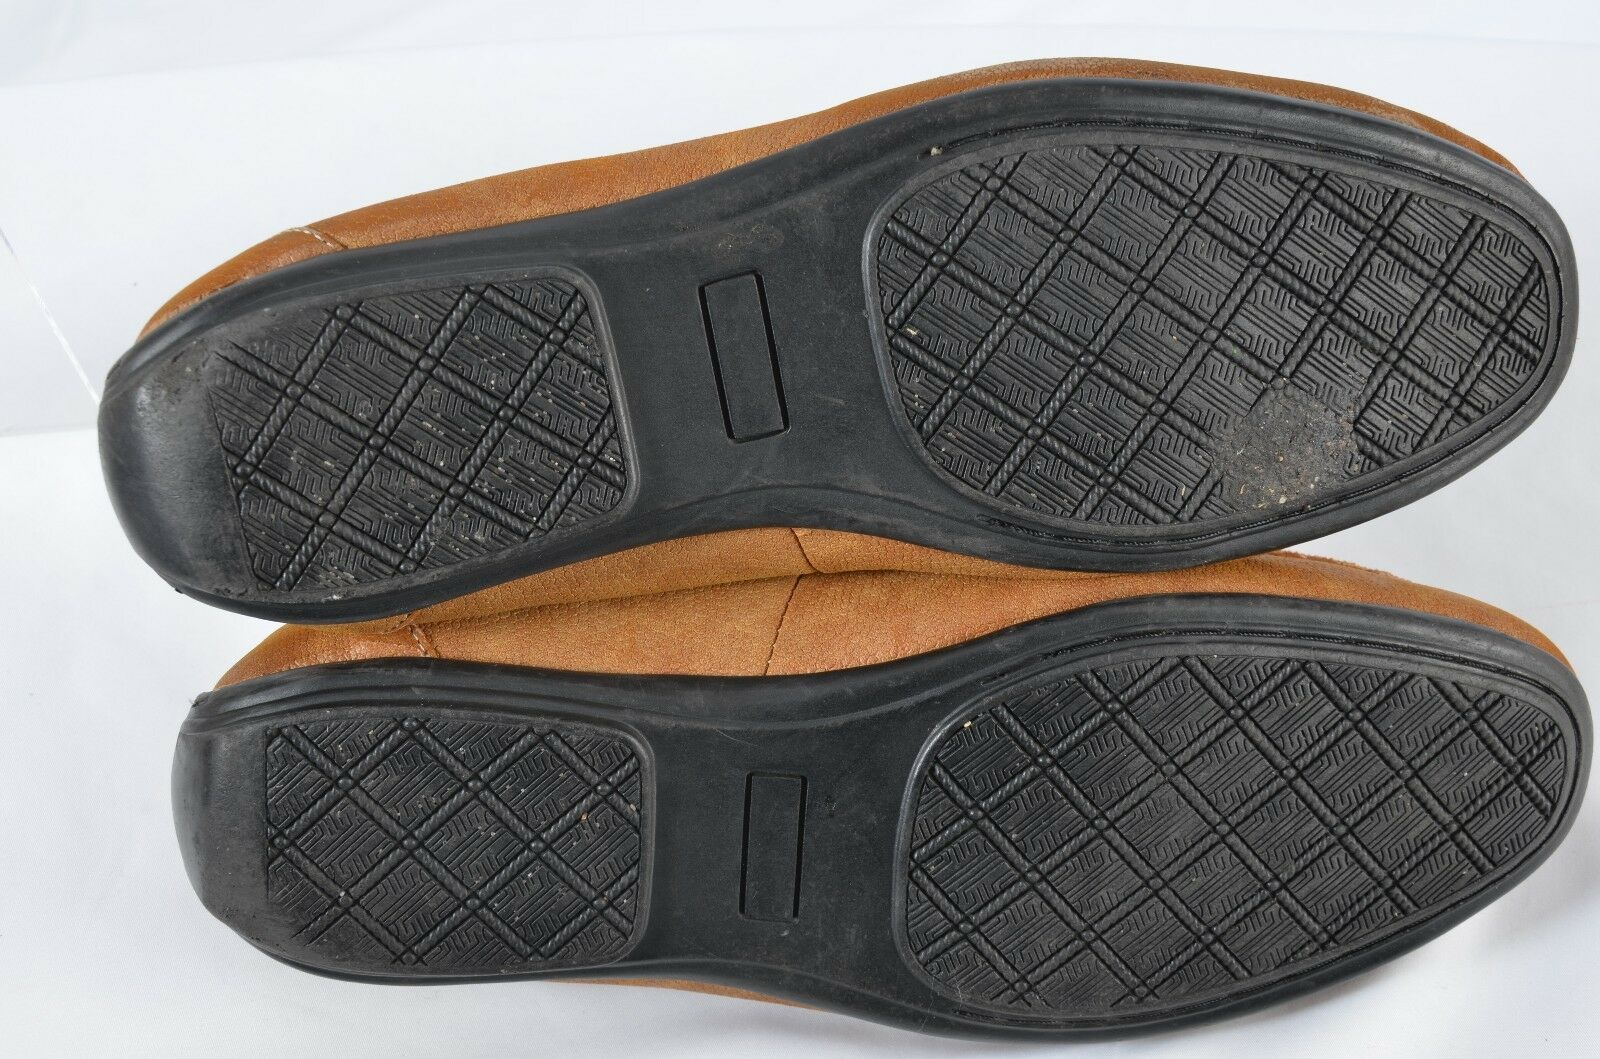 Dr Scholls Double Air Pillo Pillo Air Insoles Men Size 10.5D Comfort Walking Shoes Brown 959094